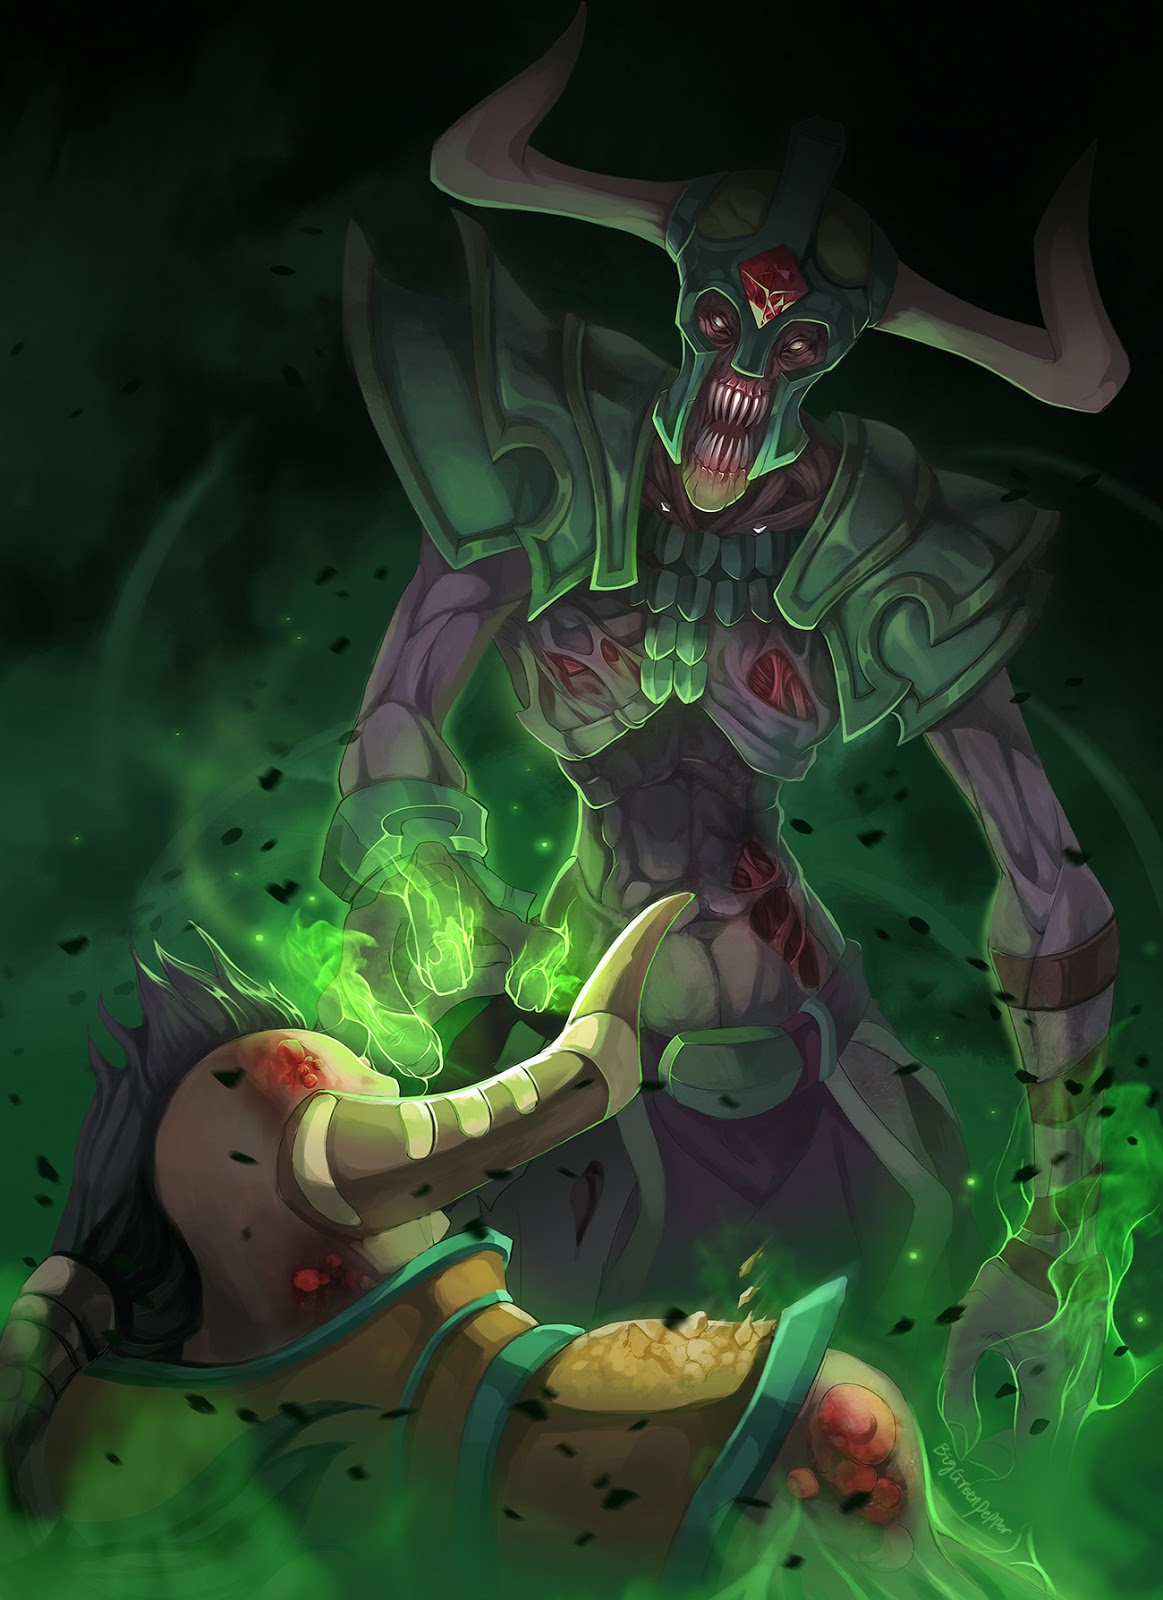 dota 2 wallpapers dota 2 fanart undying soul absorption